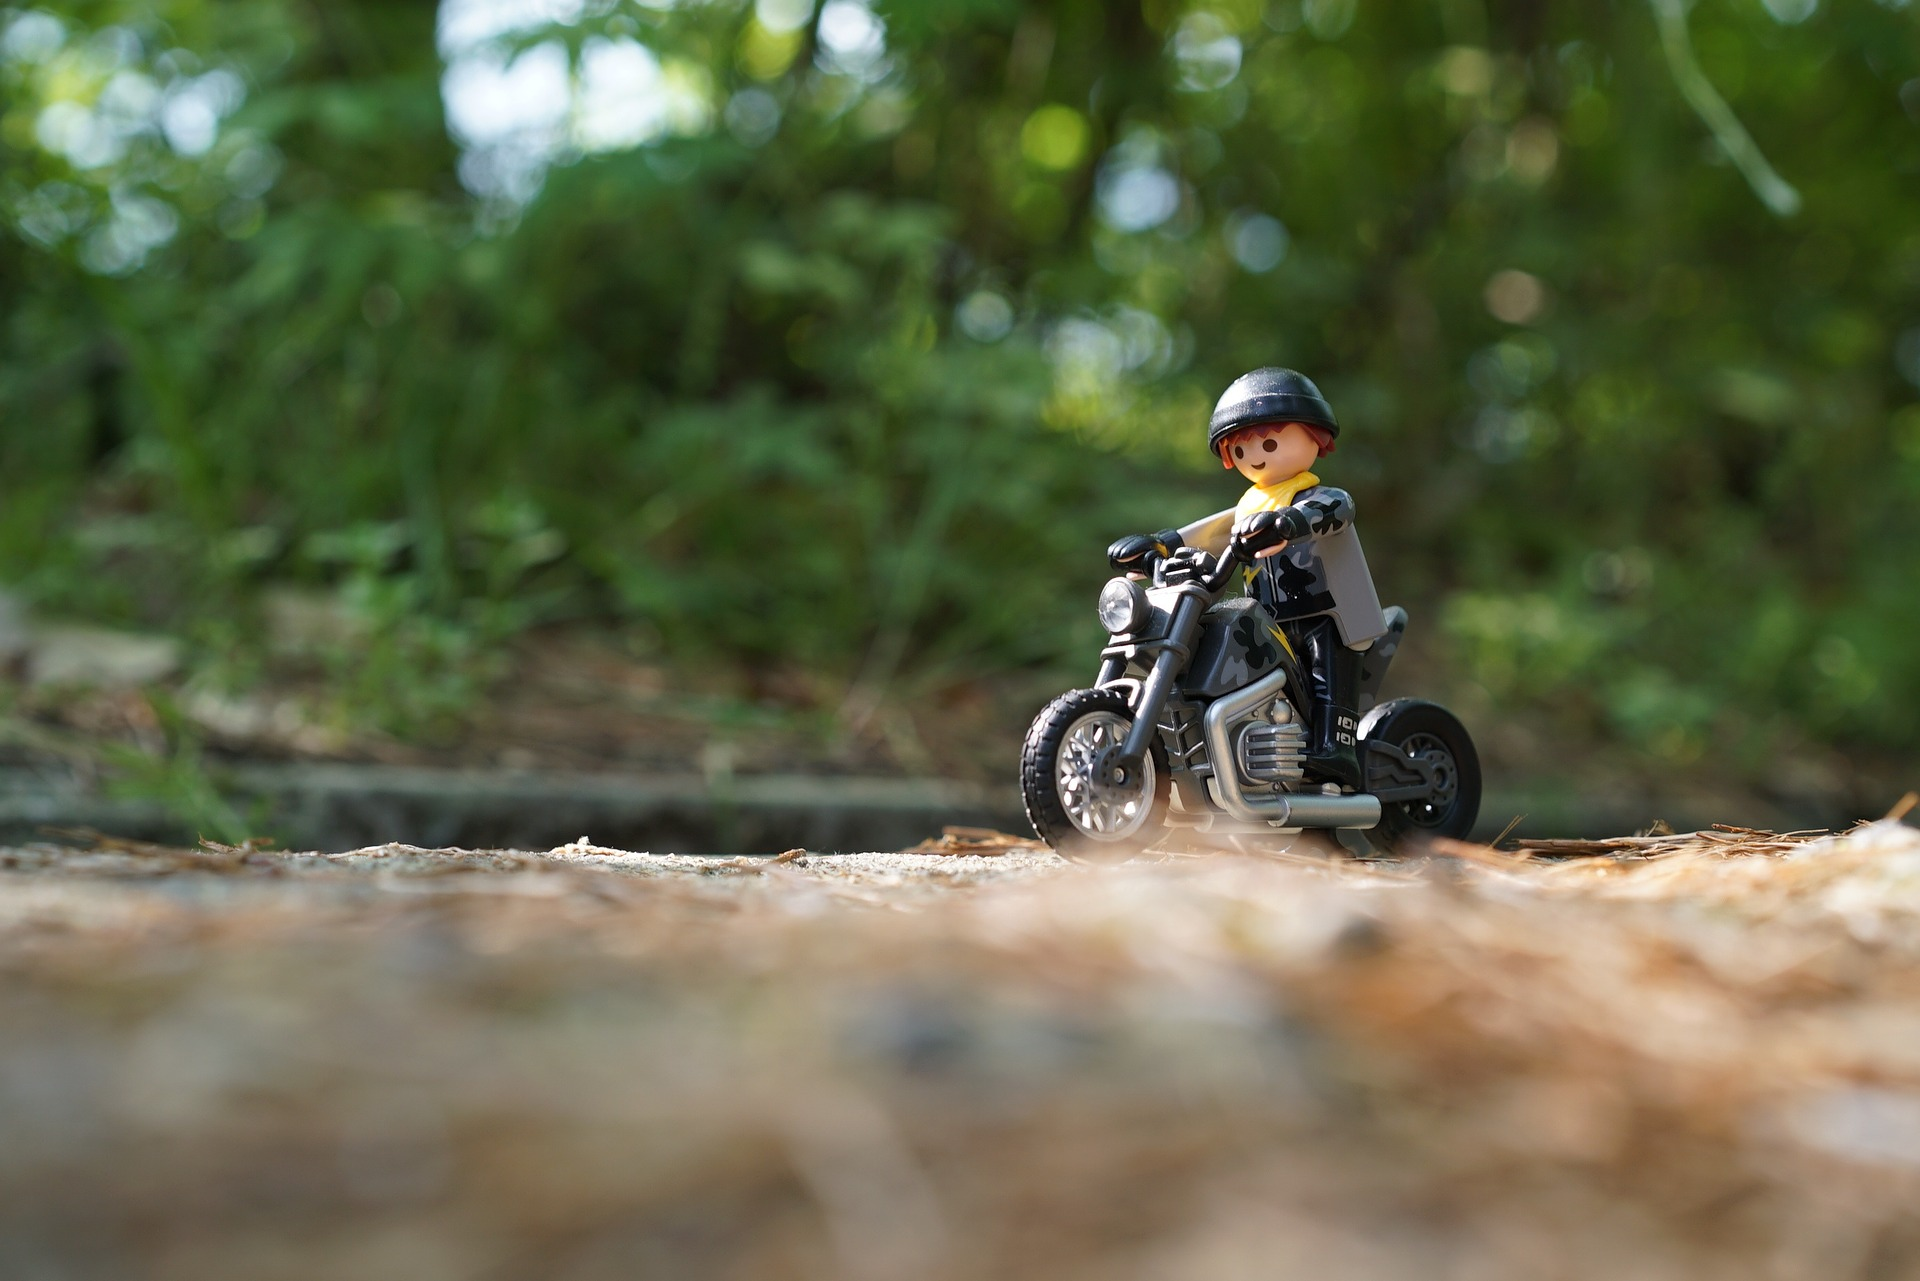 motorcycling safety